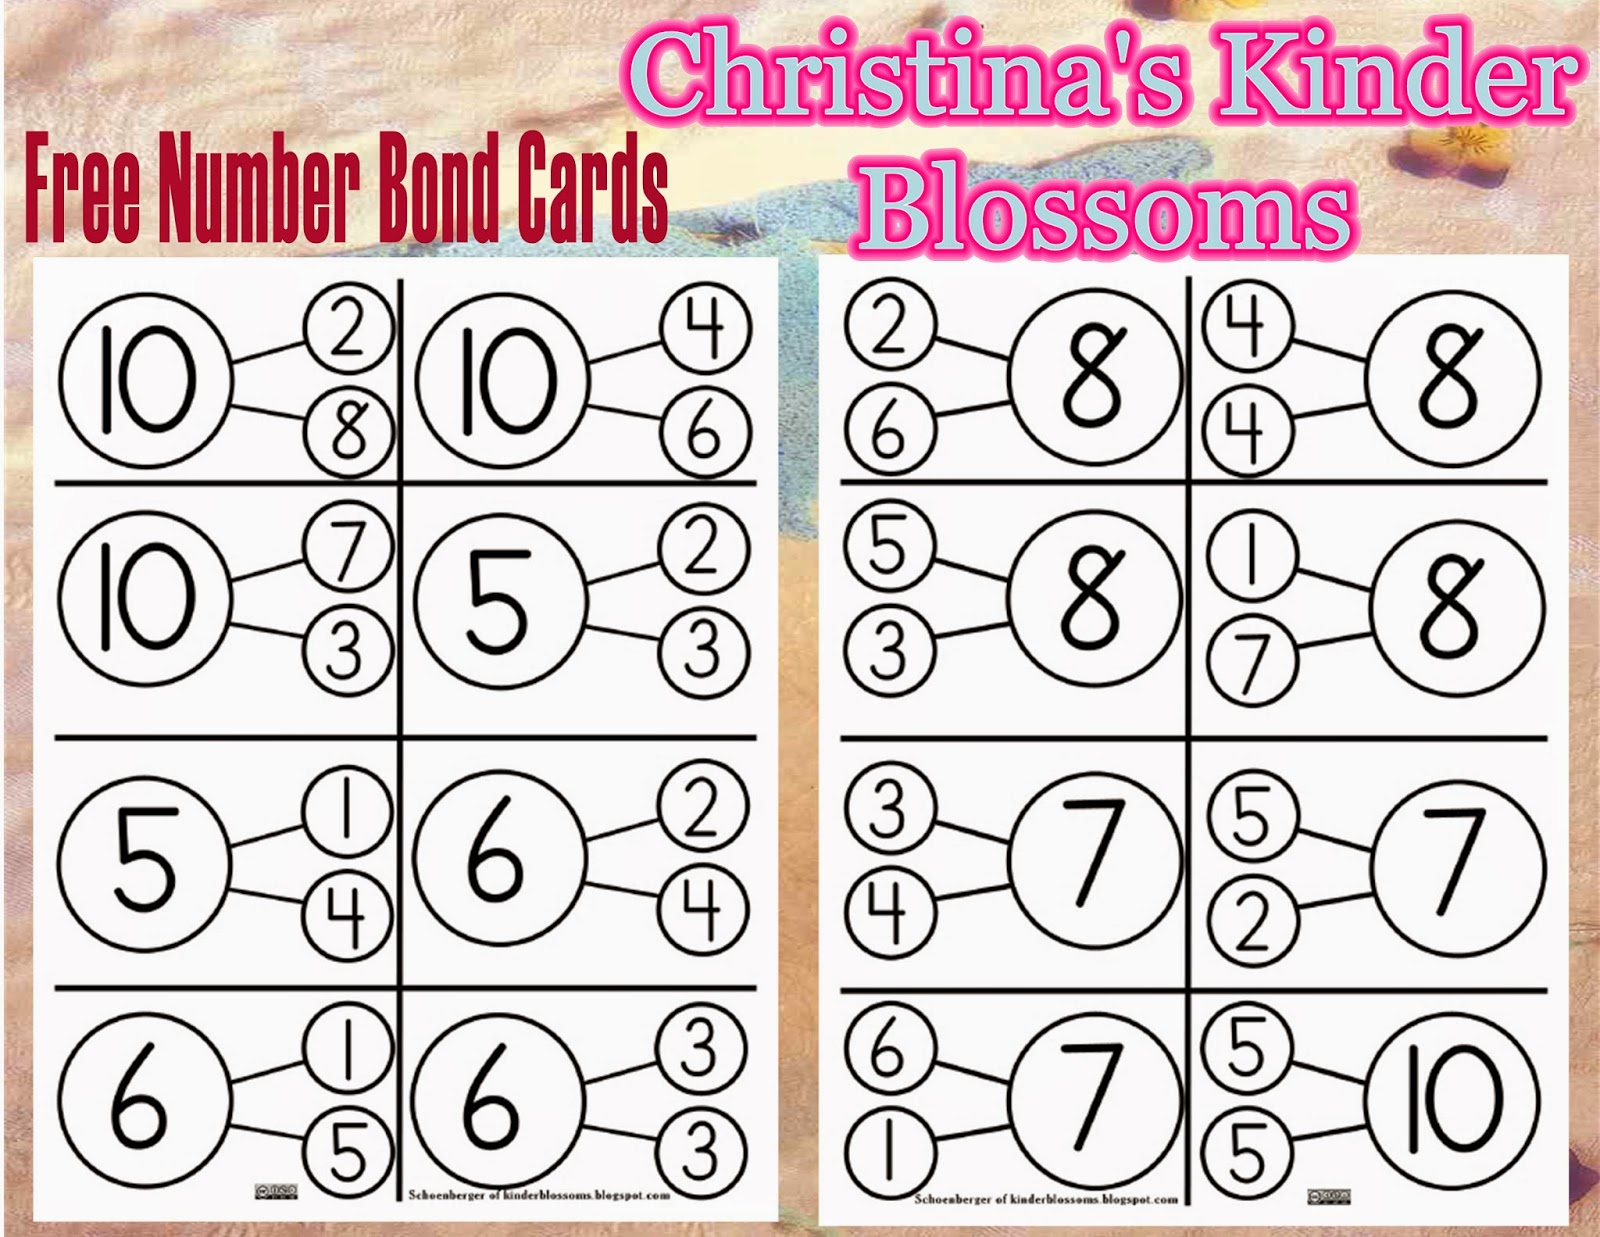 Christinas Kinder Blossoms Number Bonds In Kindergarten